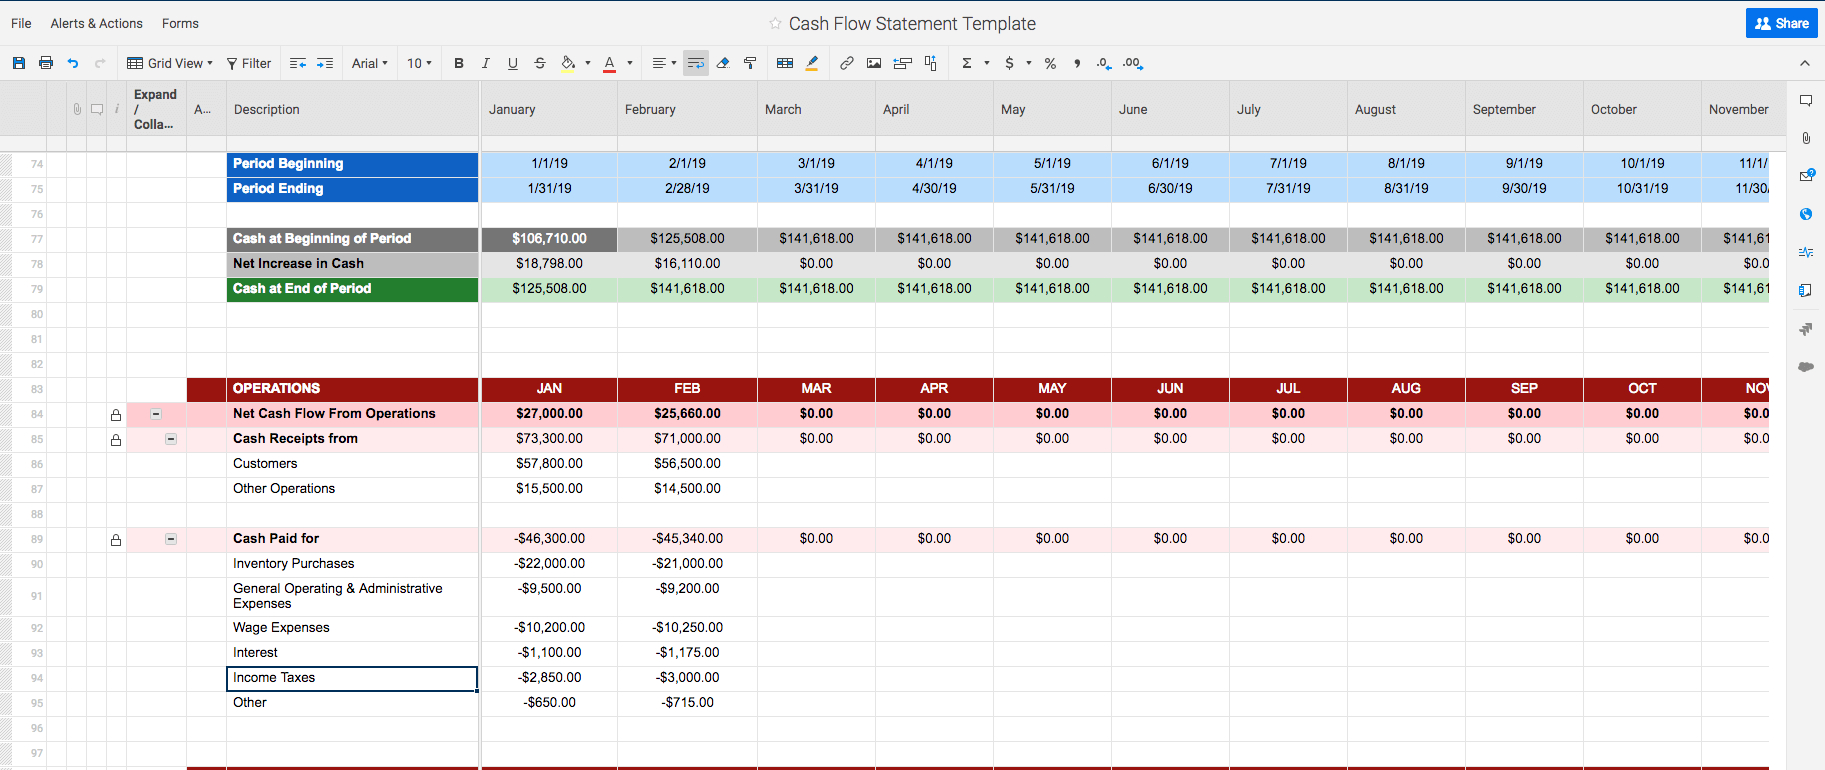 Free Cash Flow Statement Templates  Smartsheet Throughout Liquidity Report Template